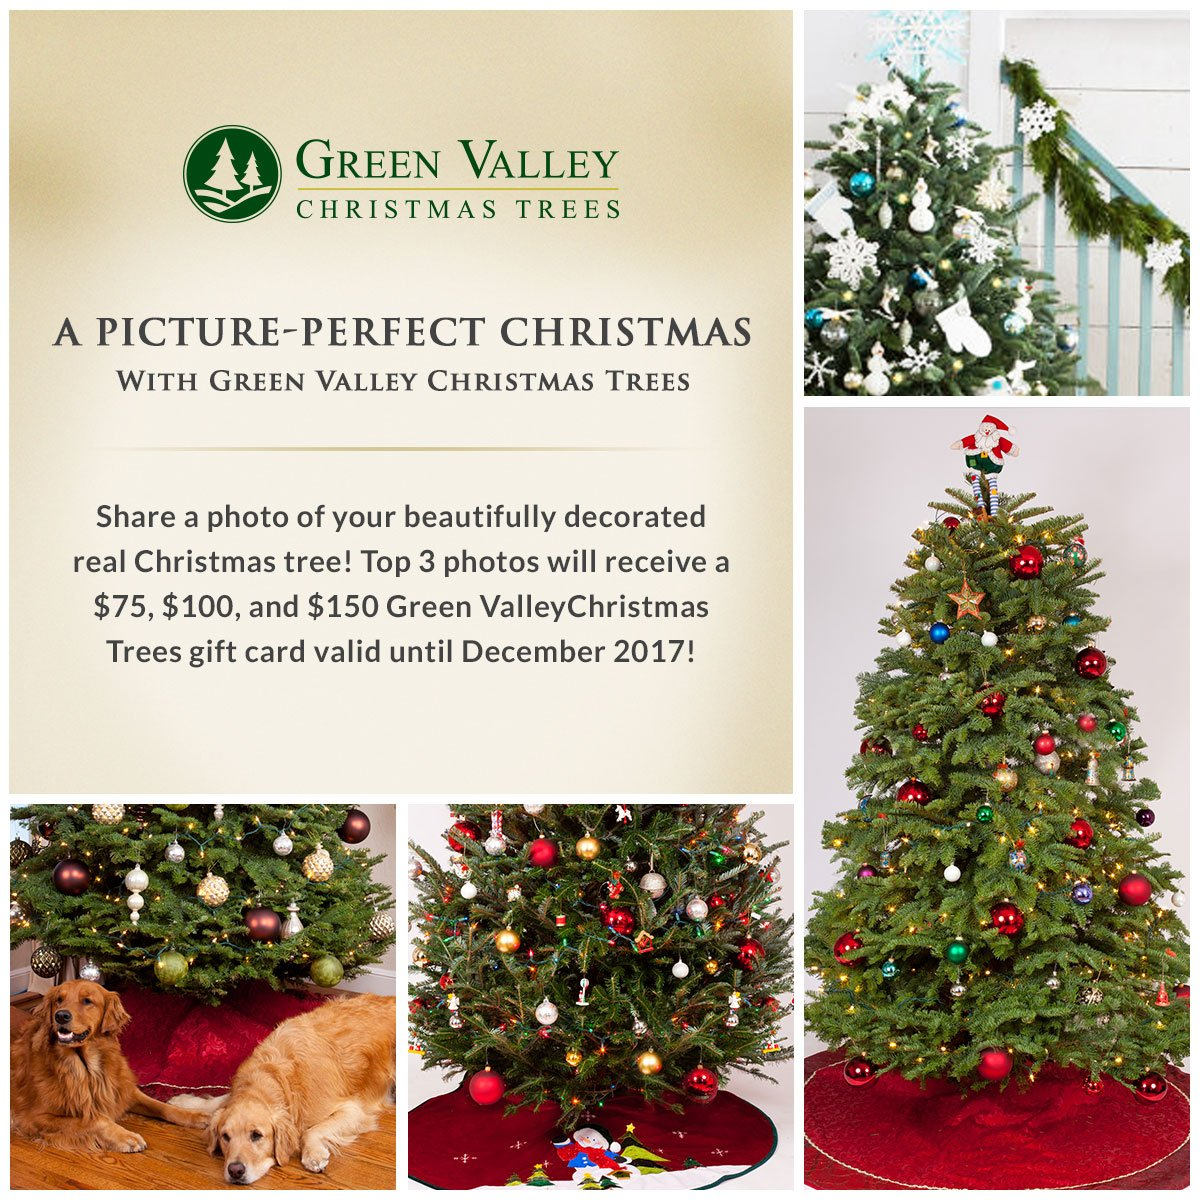 green valley trees on twitter submit a photo of your beautiful real christmas tree and win a greenvalleytree gift card ichoosegreenvalley